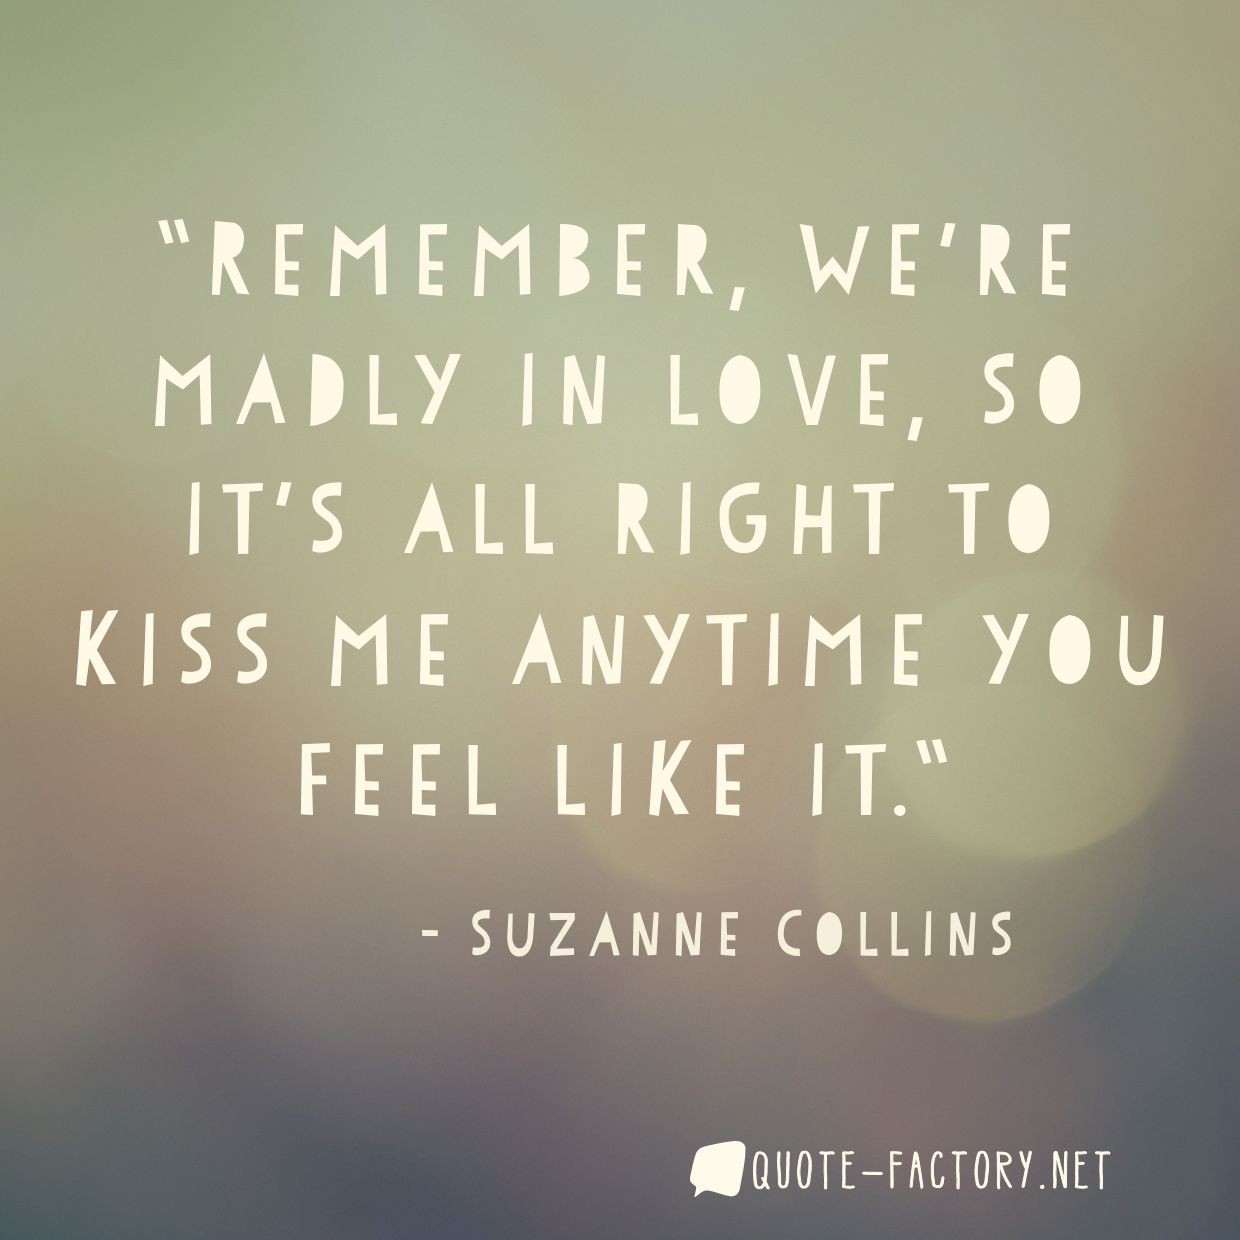 Remember, we're madly in love, so it's all right to kiss me anytime you feel like it.